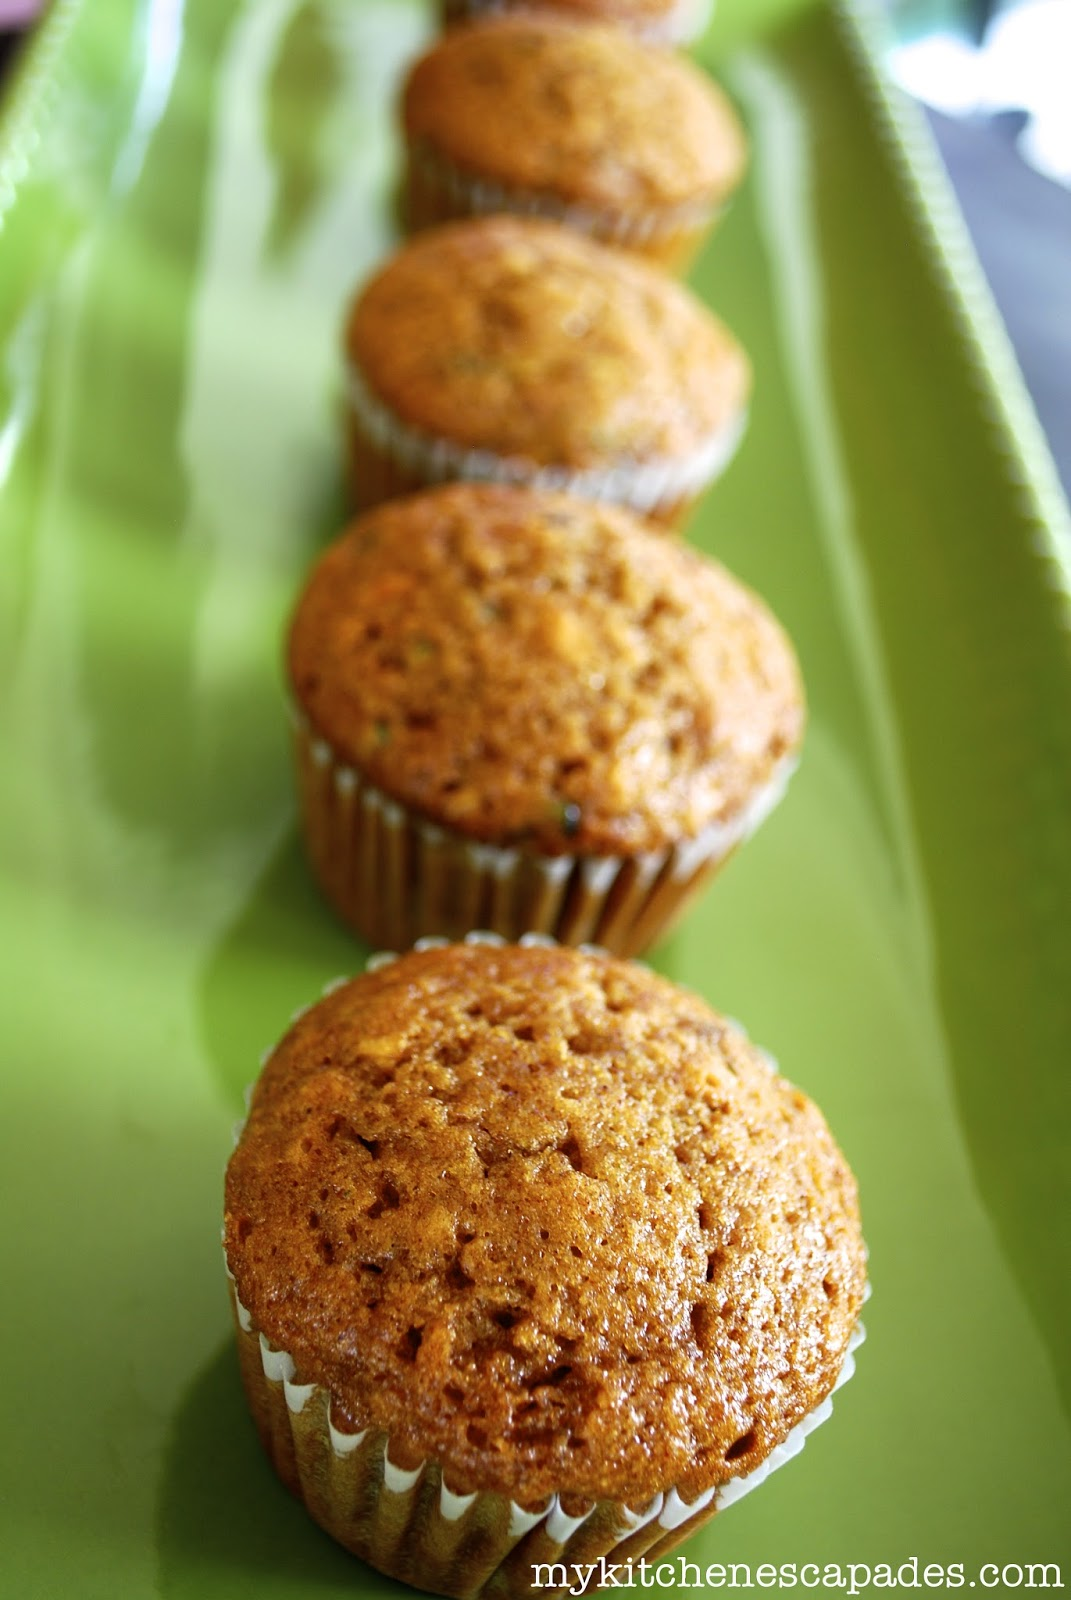 Banana Zucchini Muffins - TGIF - This Grandma is Fun